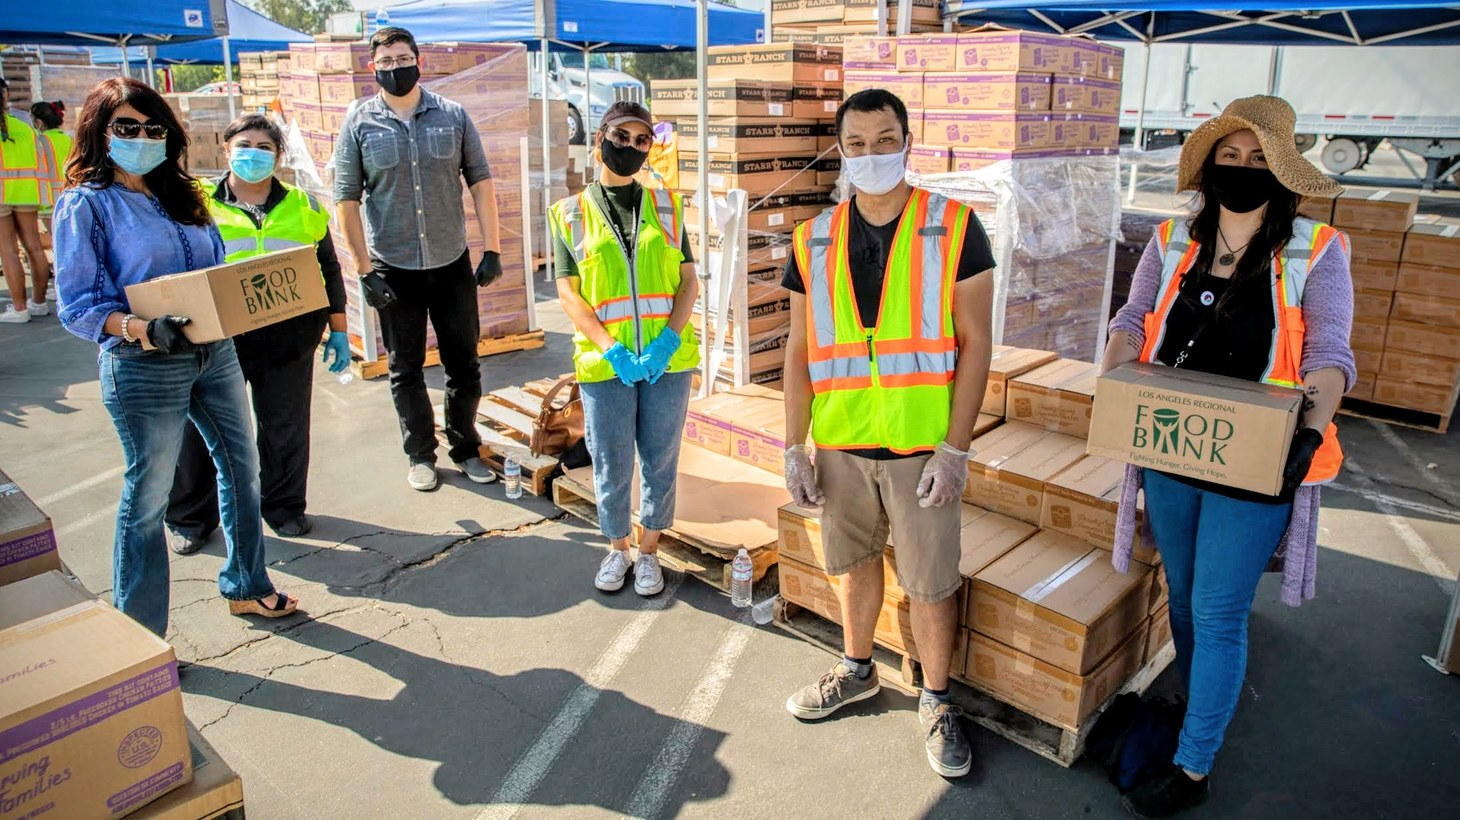 Volunteering is one way Michael Flood, Executive Director of the Los Angeles Regional Food Bank, recommends helping the organization.